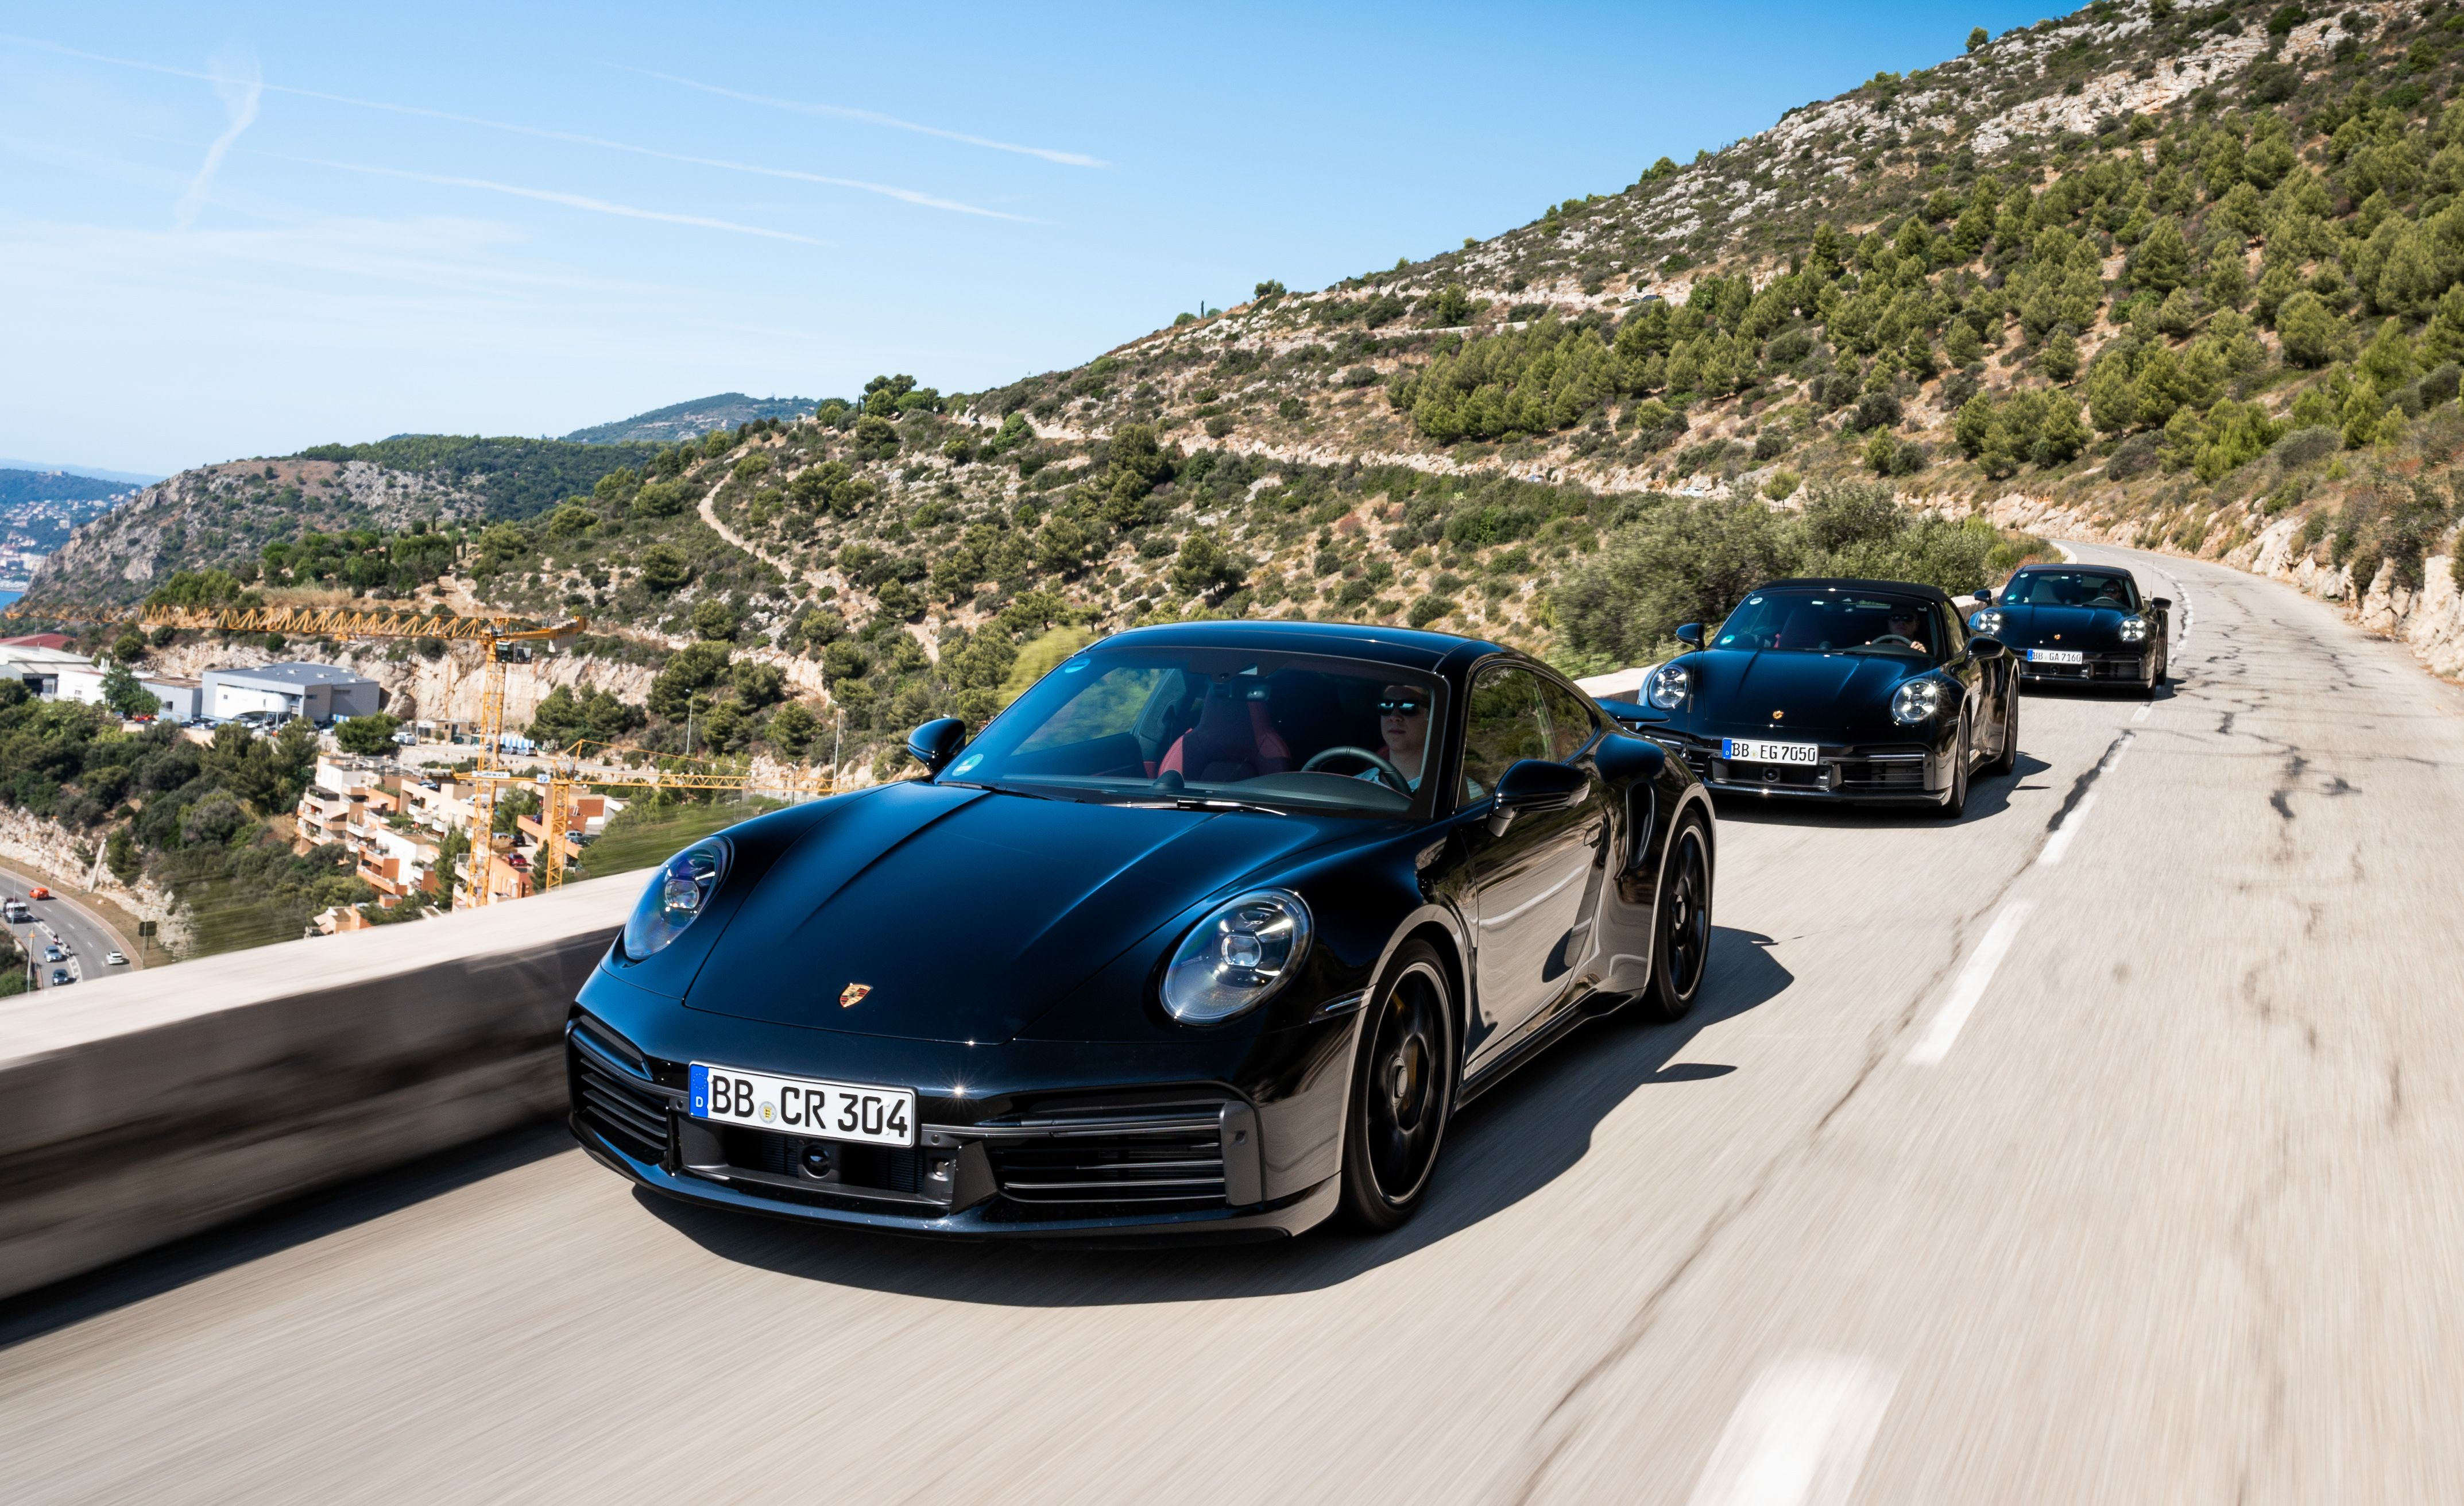 Everything We Learned Riding In The 2020 Porsche 911 Turbo S